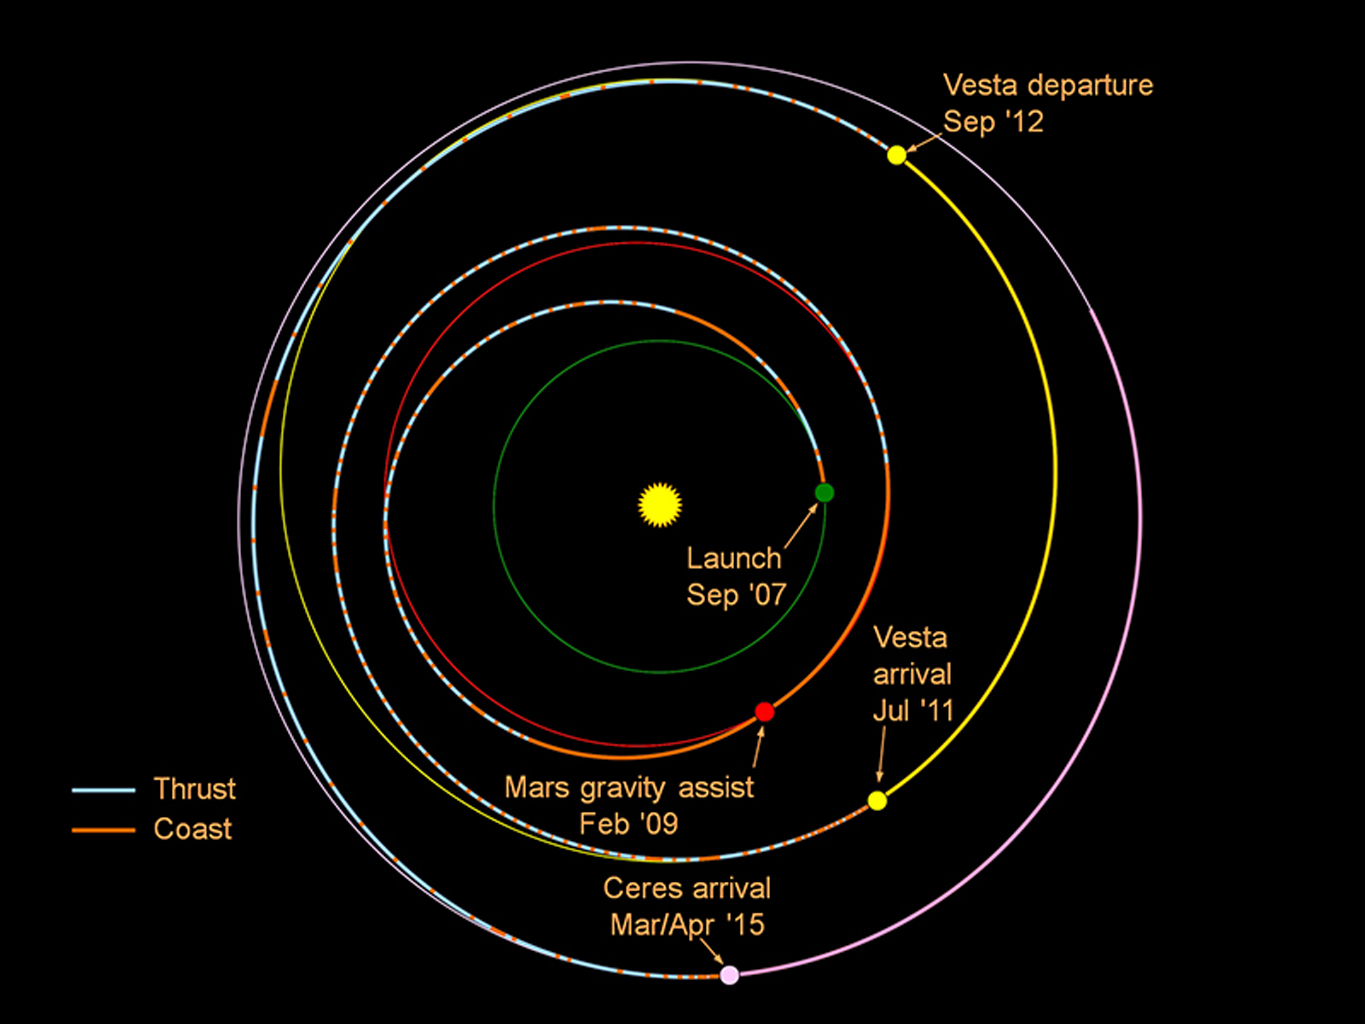 This graphic shows the planned trek of NASA's Dawn spacecraft from its launch in 2007 through its arrival at the dwarf planet Ceres in early 2015.